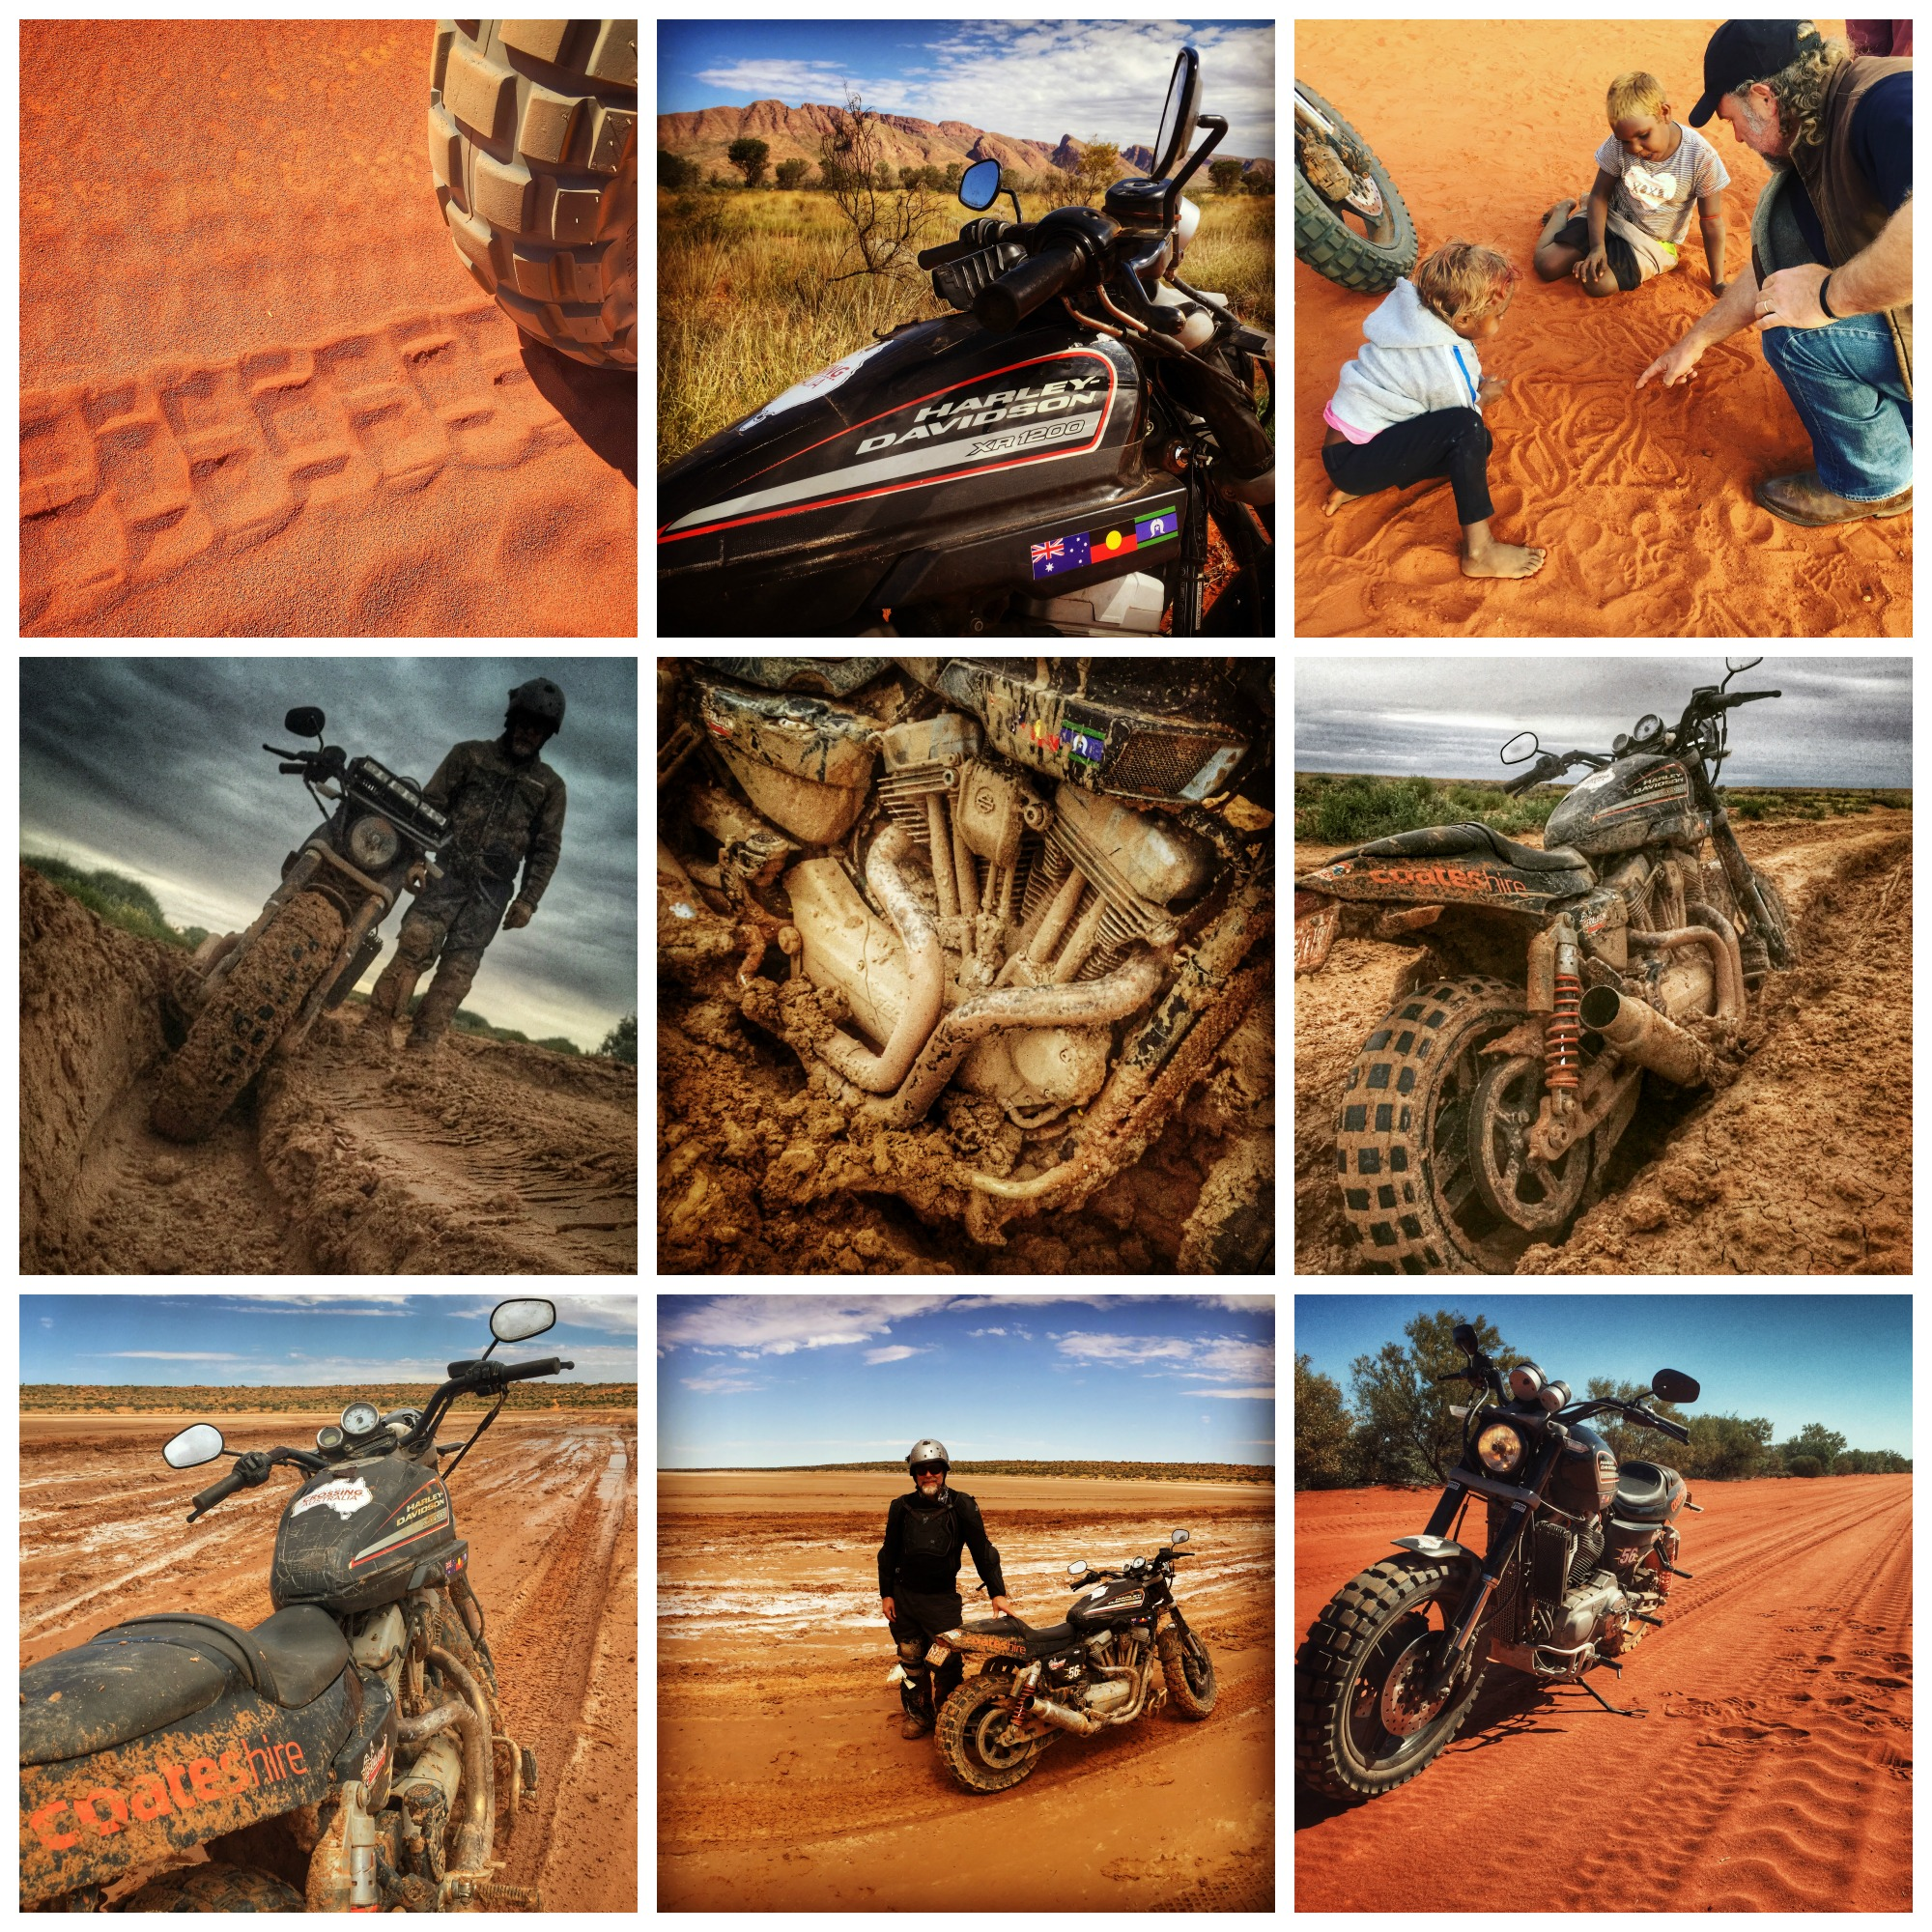 Pictured: A montage of some aspects of the Simpson Desert after rain and the rich colours of the Gibson Desert.